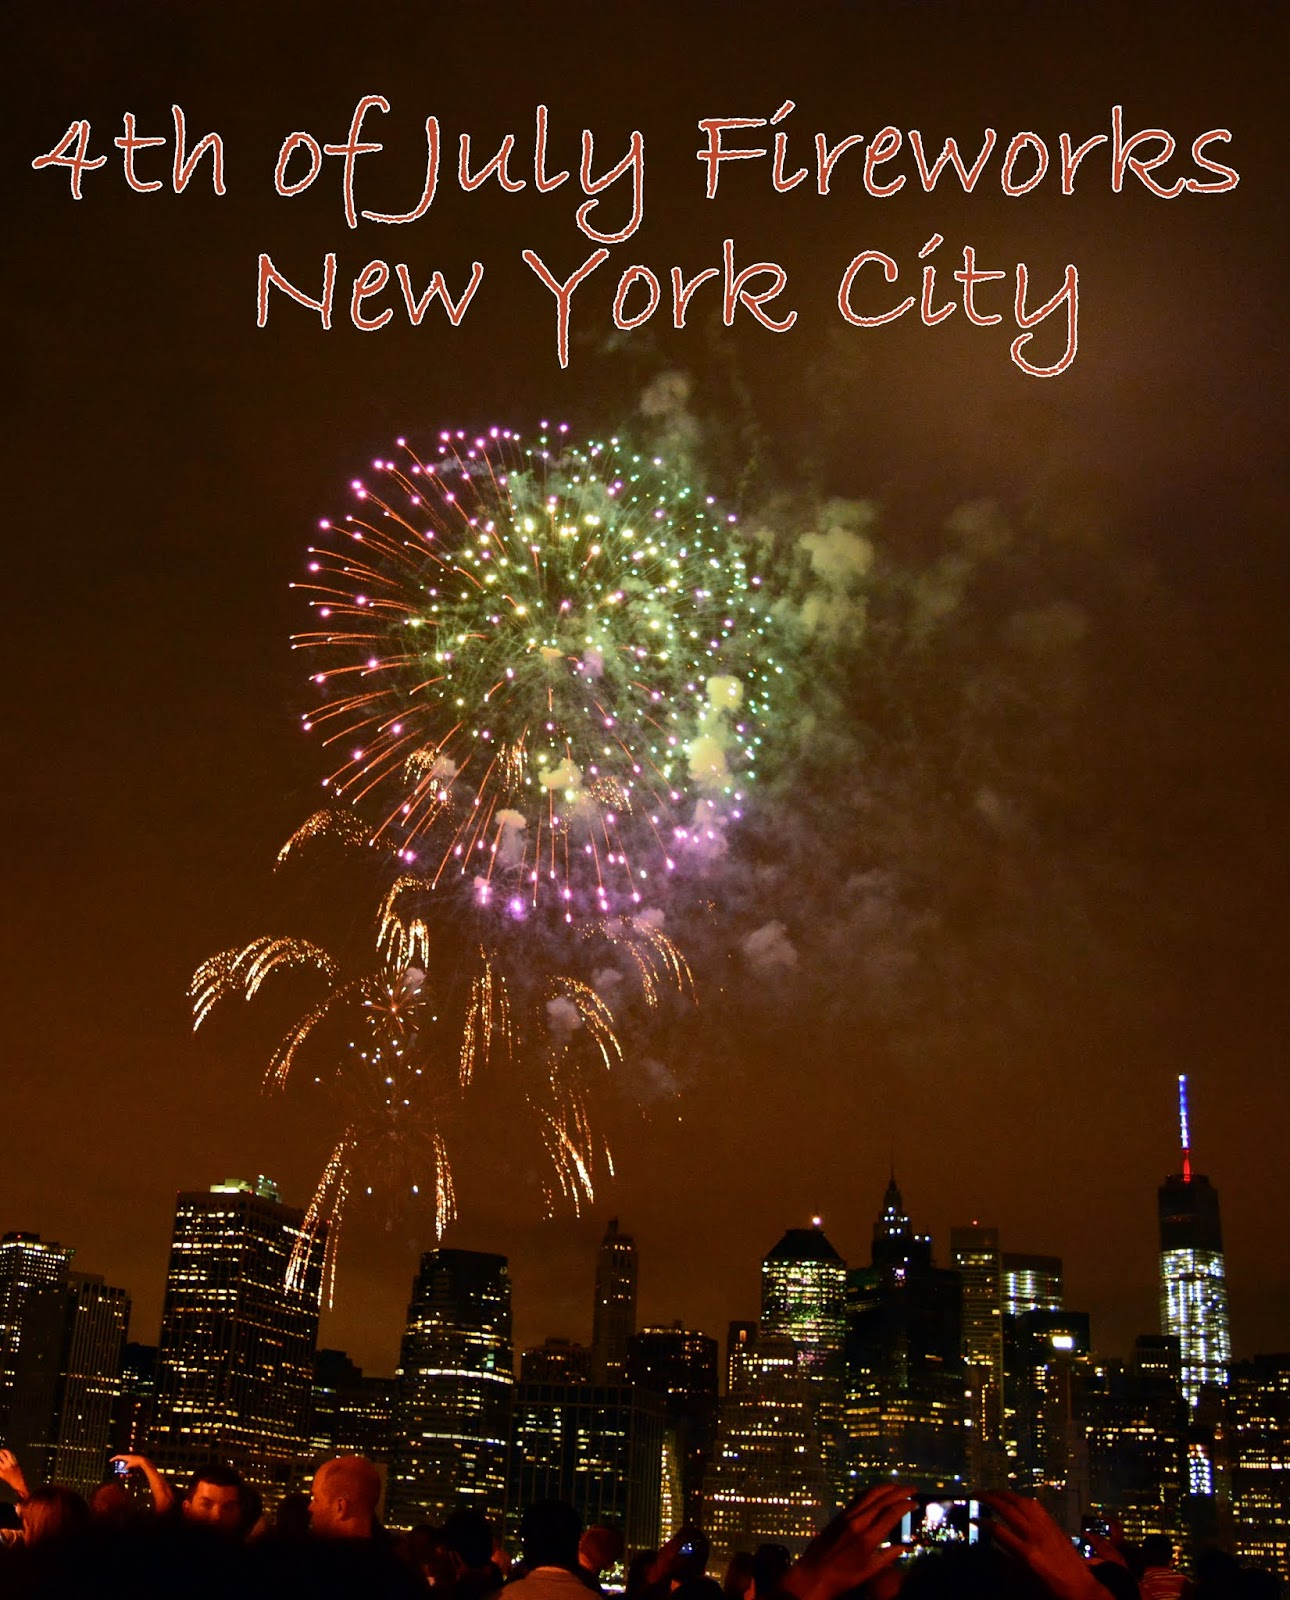 Mille Fiori Favoriti: 4th of July Fireworks in New York City!